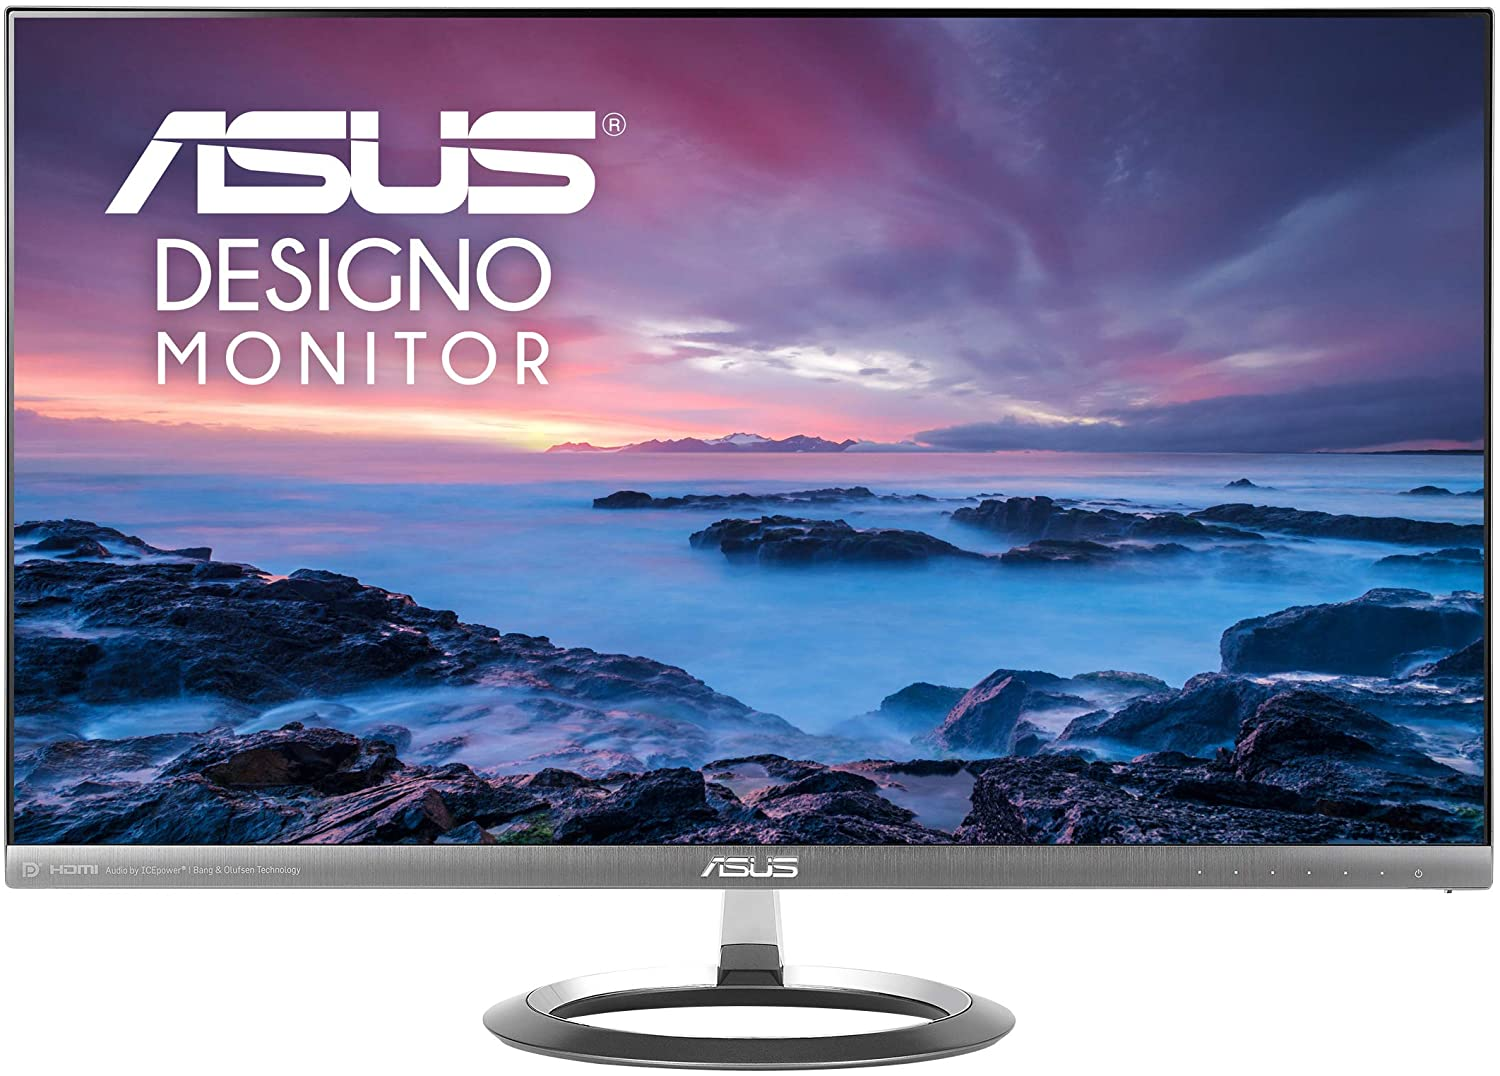 ASUS Designo MX27AQ - best monitor with speakers and hdmi